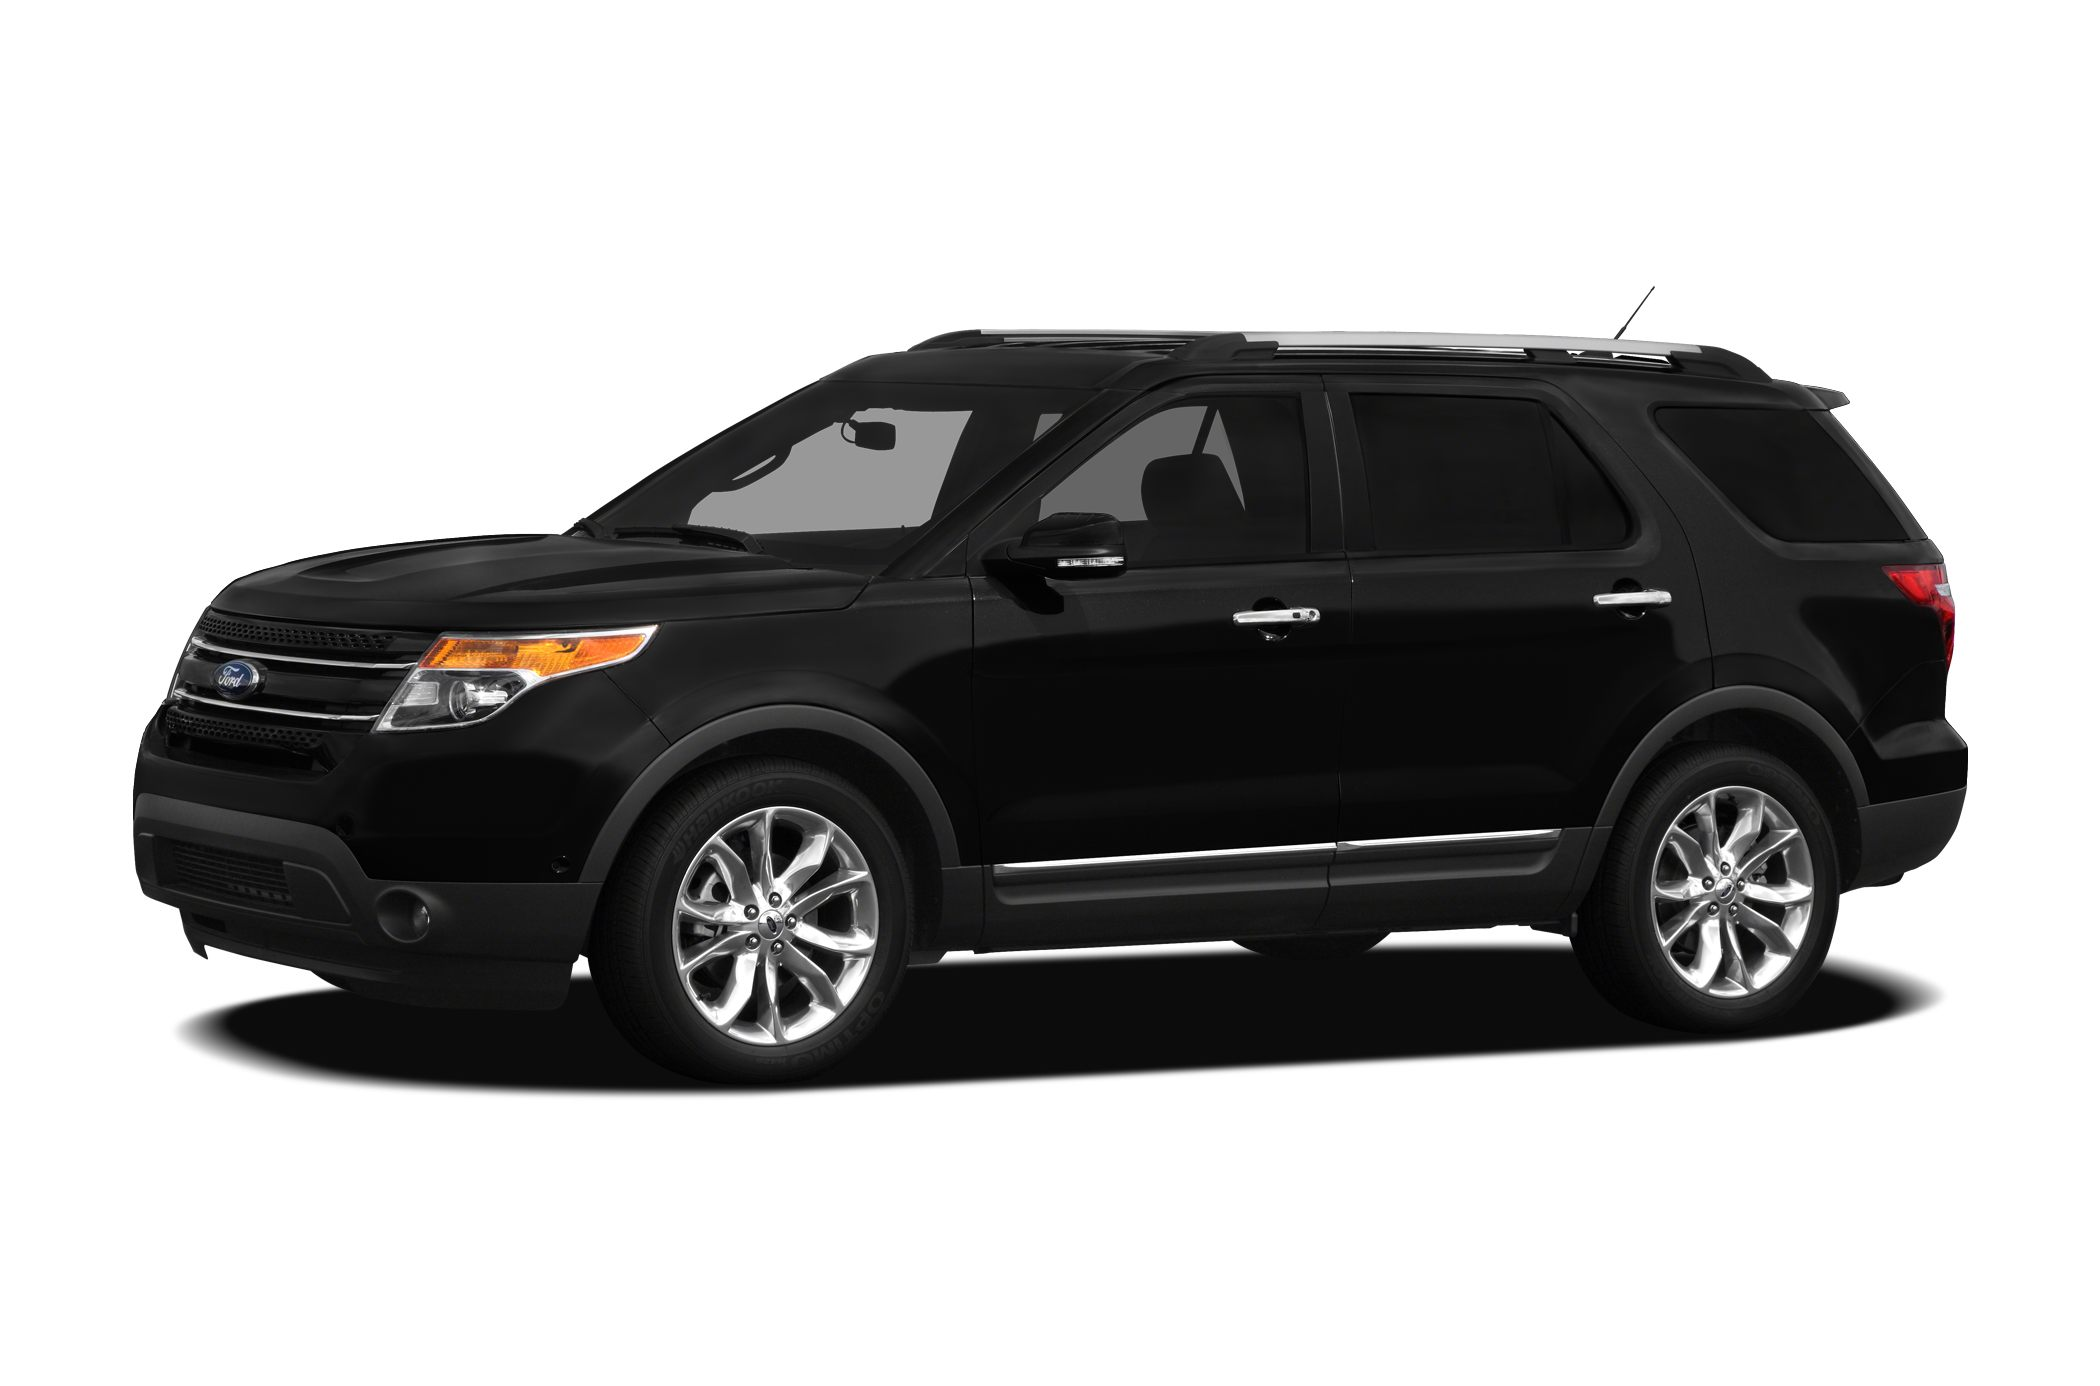 2012 Ford Explorer Limited SUV for sale in Bardstown for $30,000 with 52,812 miles.